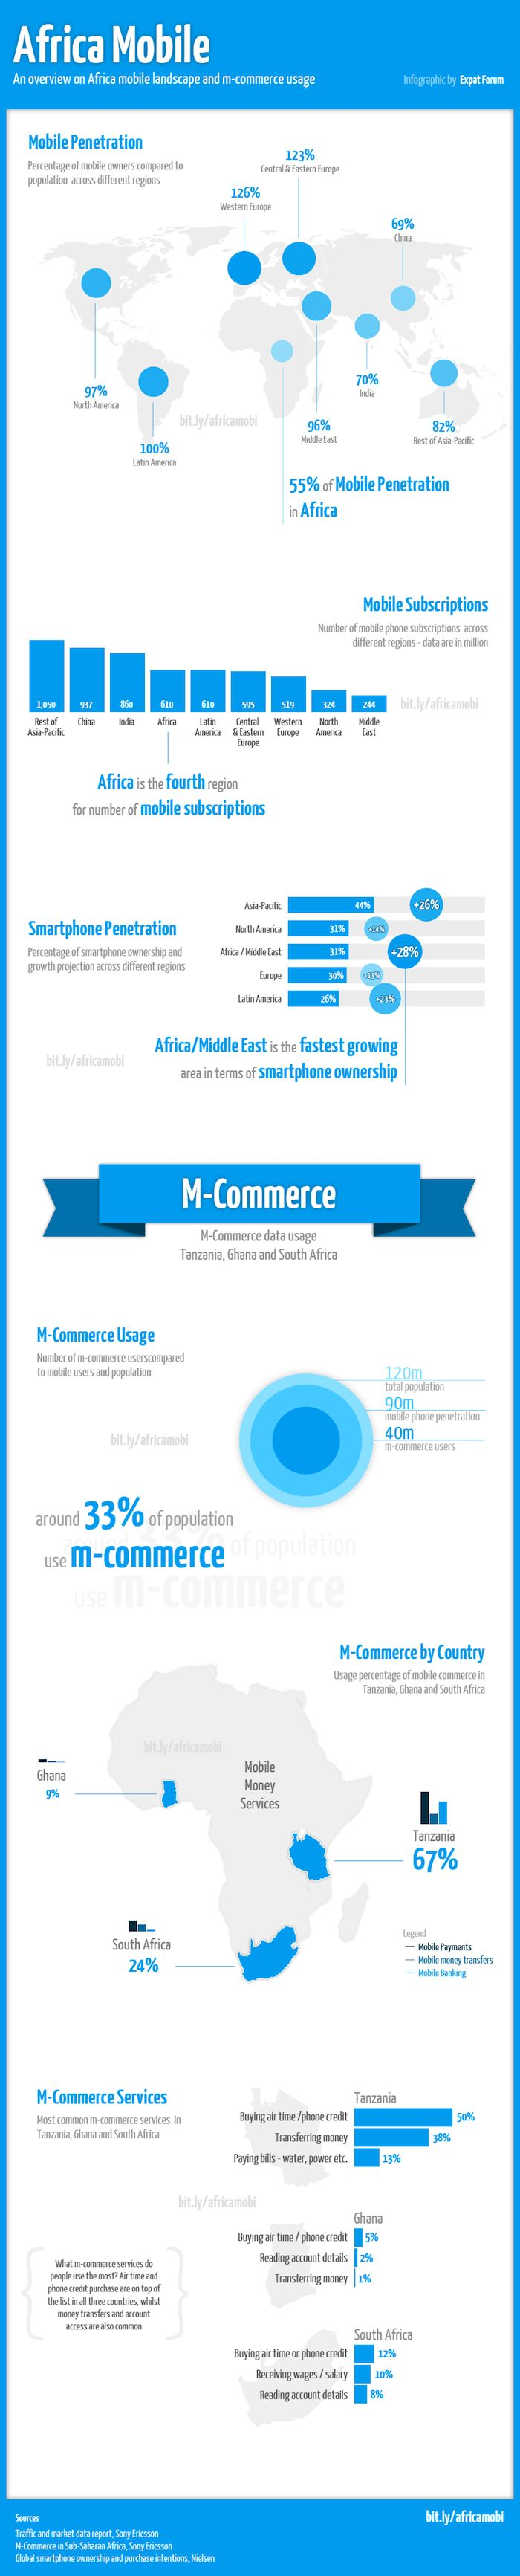 An overview on Africa mobile landscape and m-commerce usage {Expat Forum}